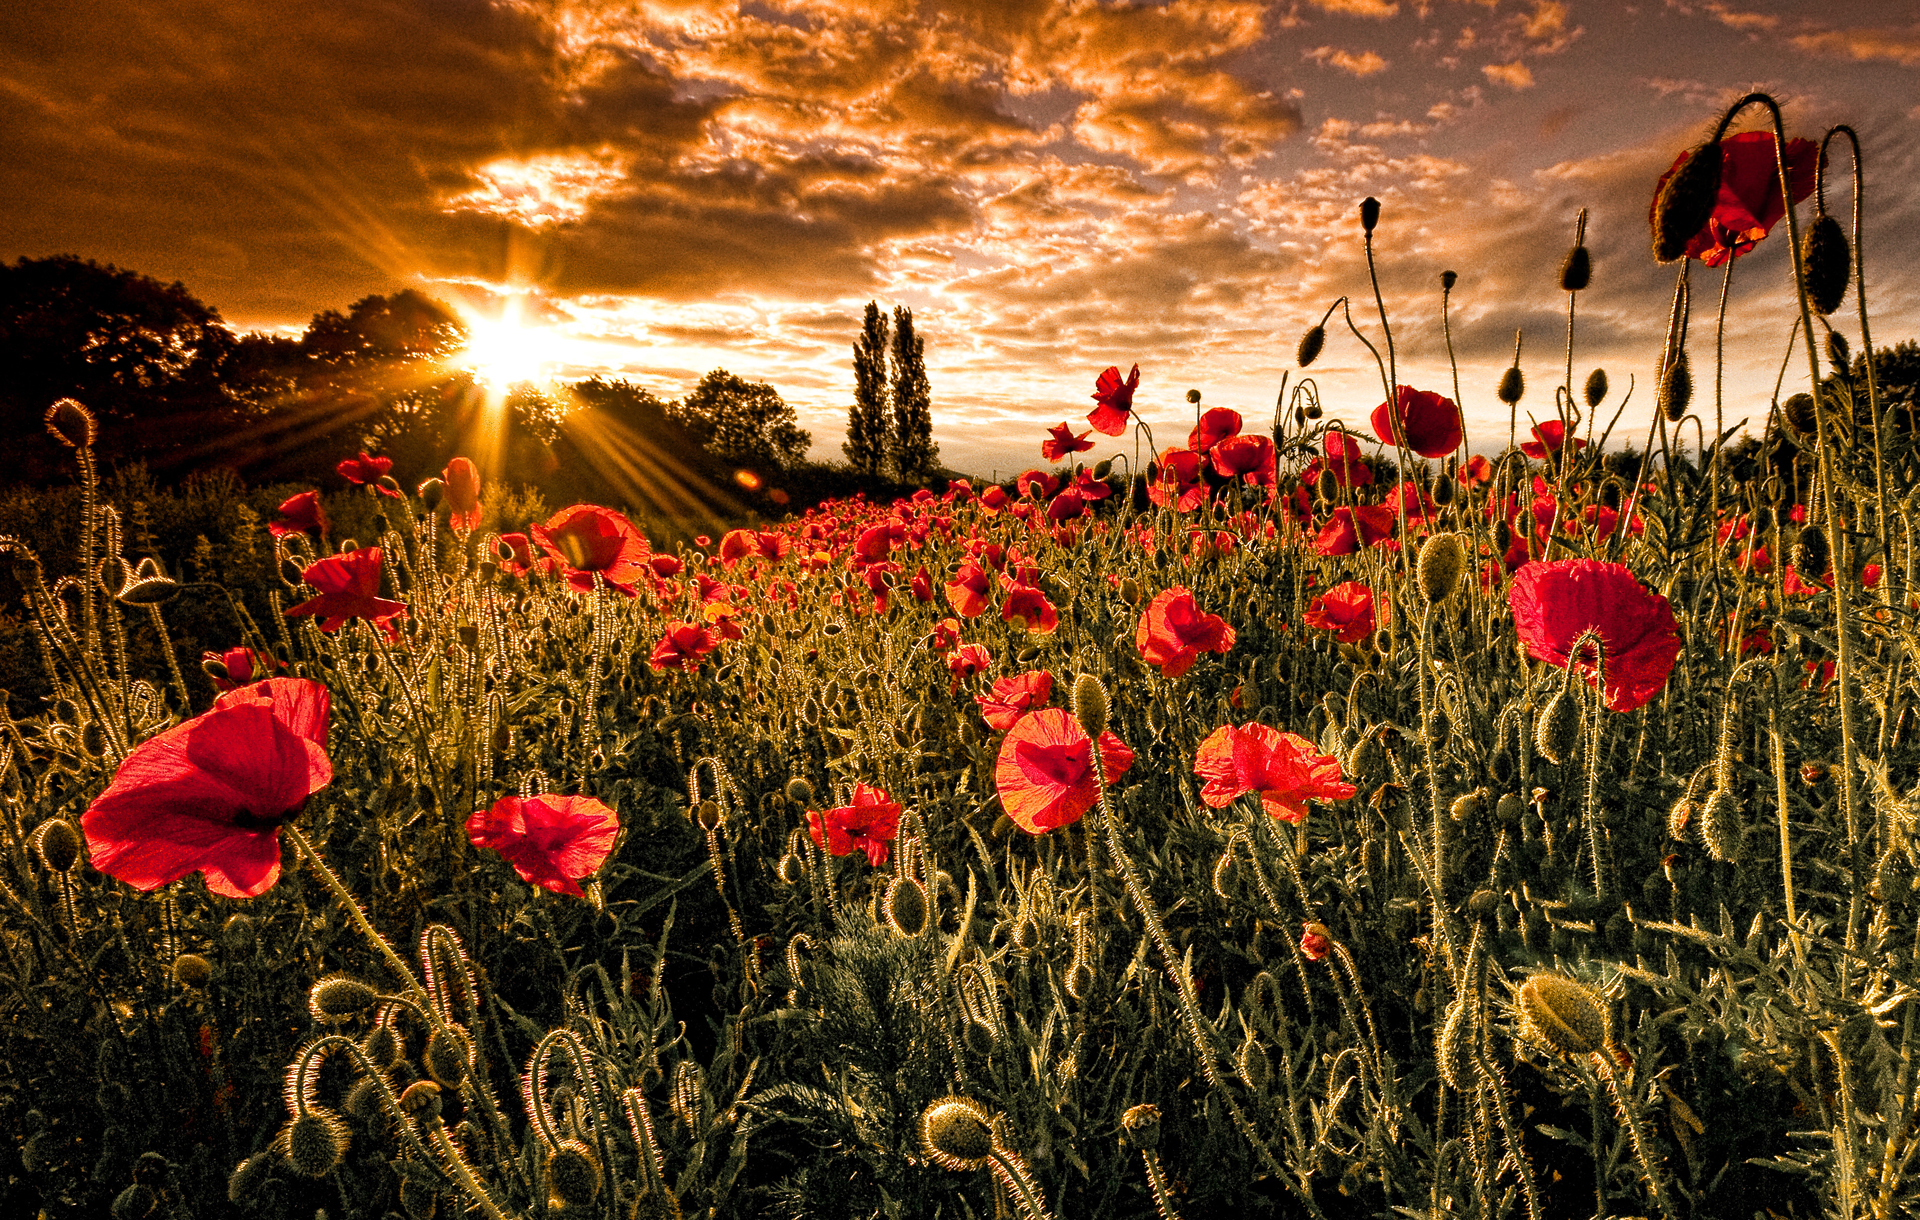 Drawn poppy flanders field Wallpaper Poppy Collection Flowers Nature